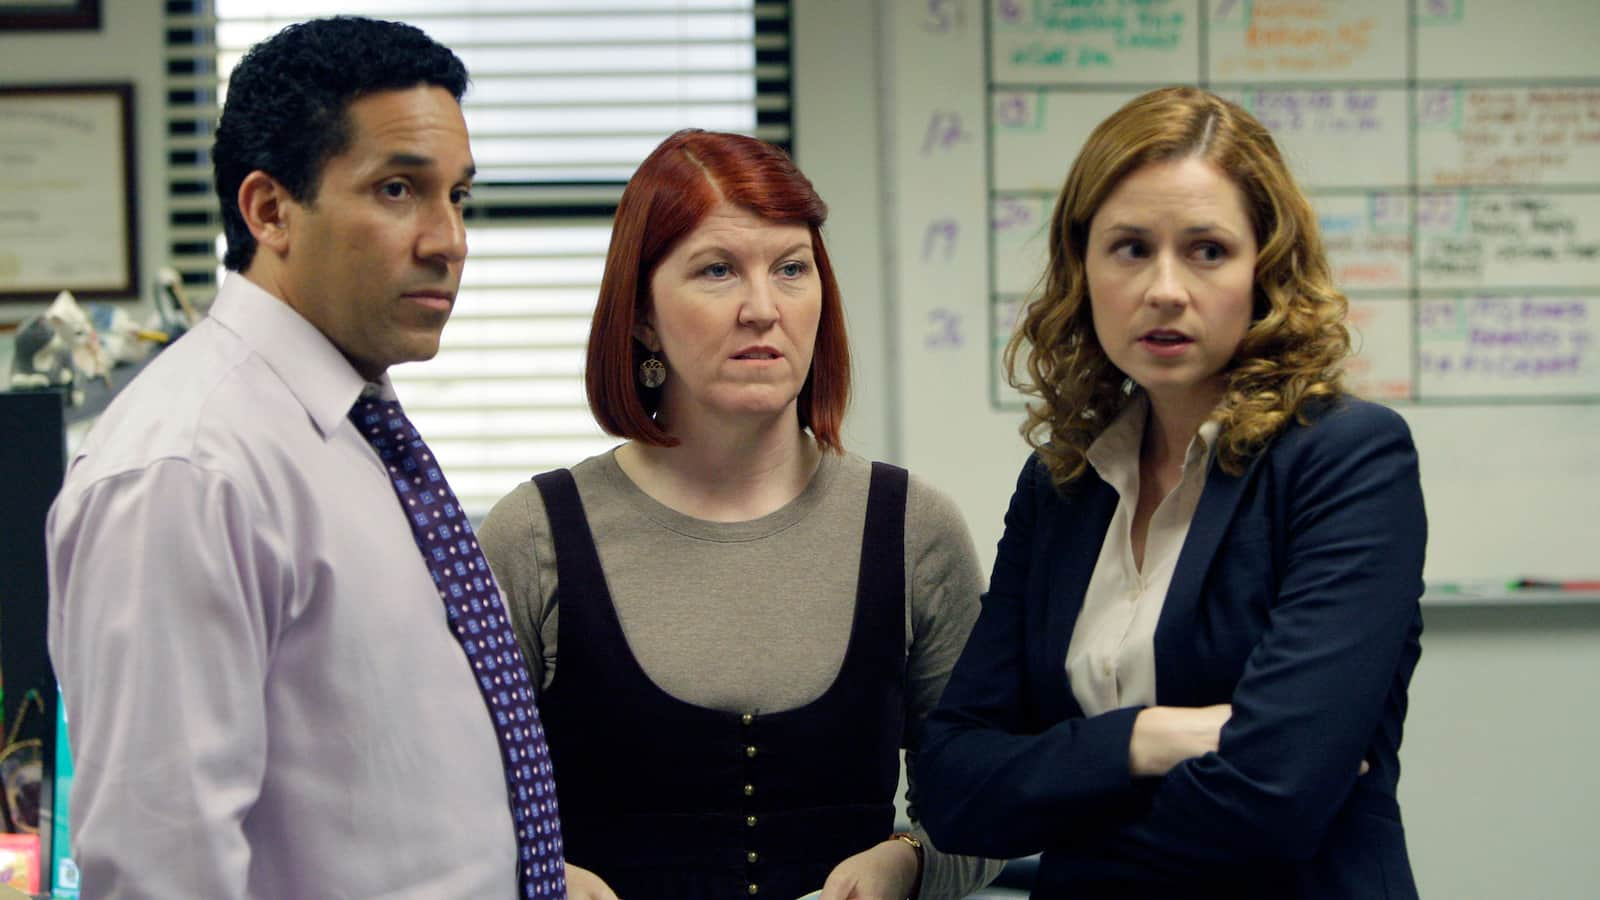 the-office/sesong-5/episode-23